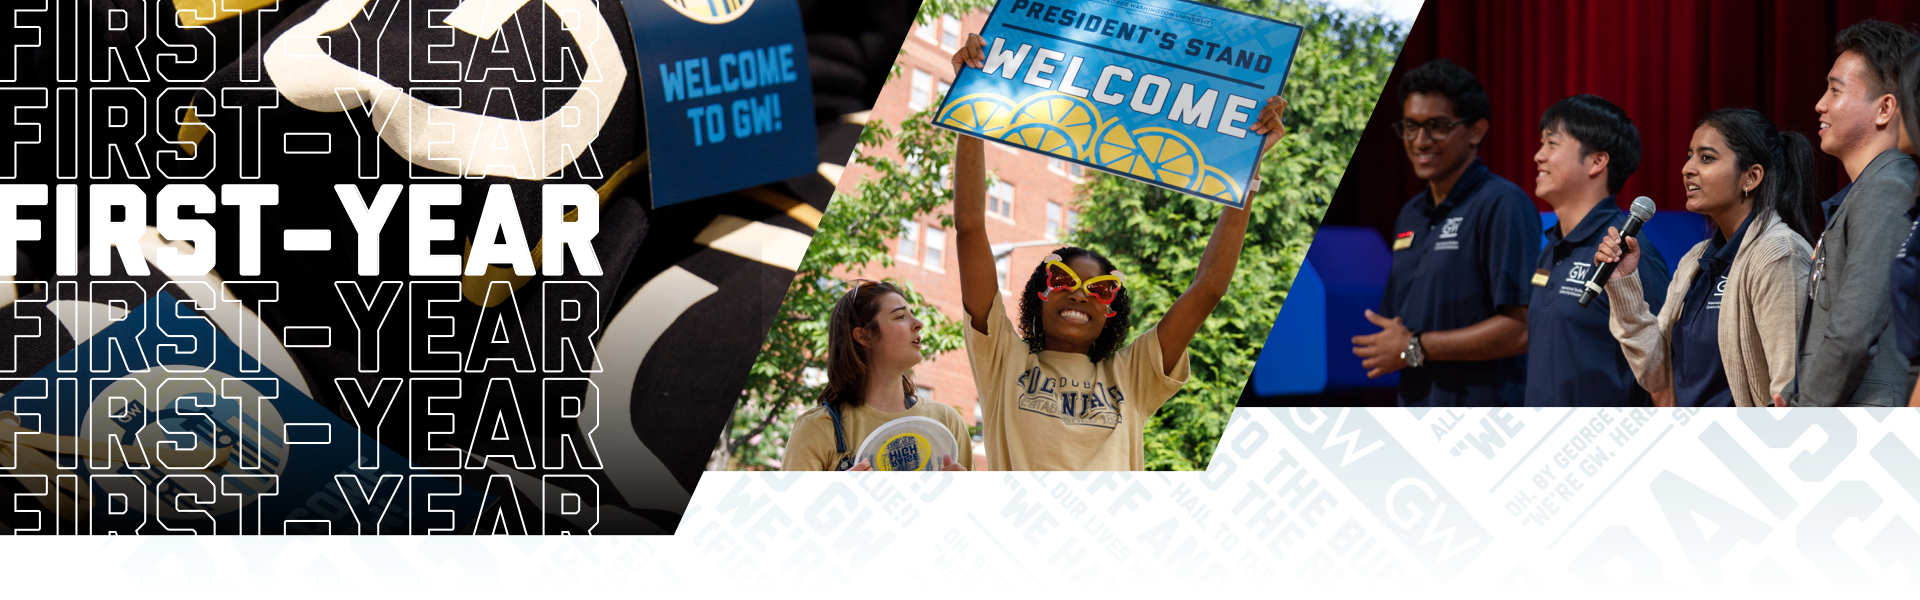 First-Year; student with welcome sign, students with microphone